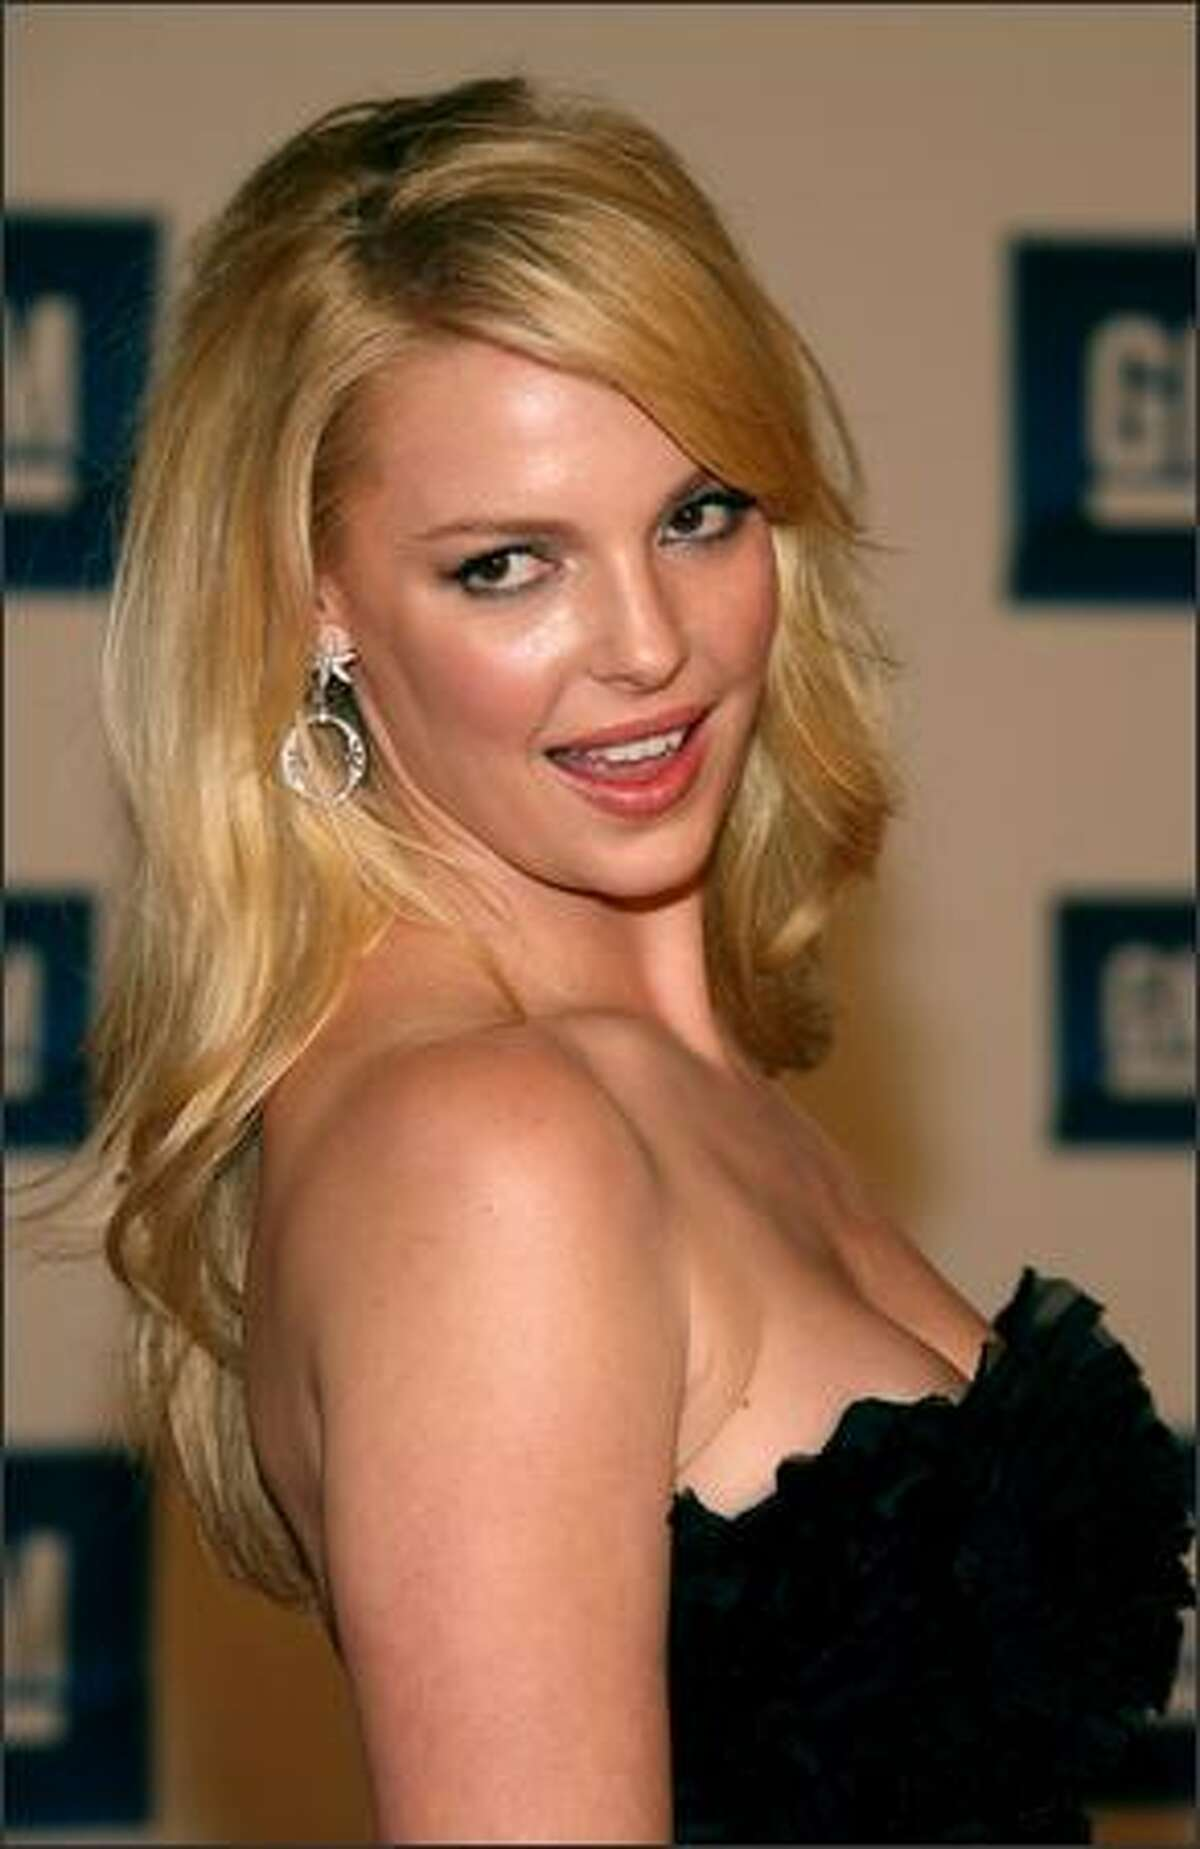 Actress Katherine Heigl arrives at the 6th Annual General Motors TEN event at Paramount Studios on Feb. 20, 2007 in Los Angeles.